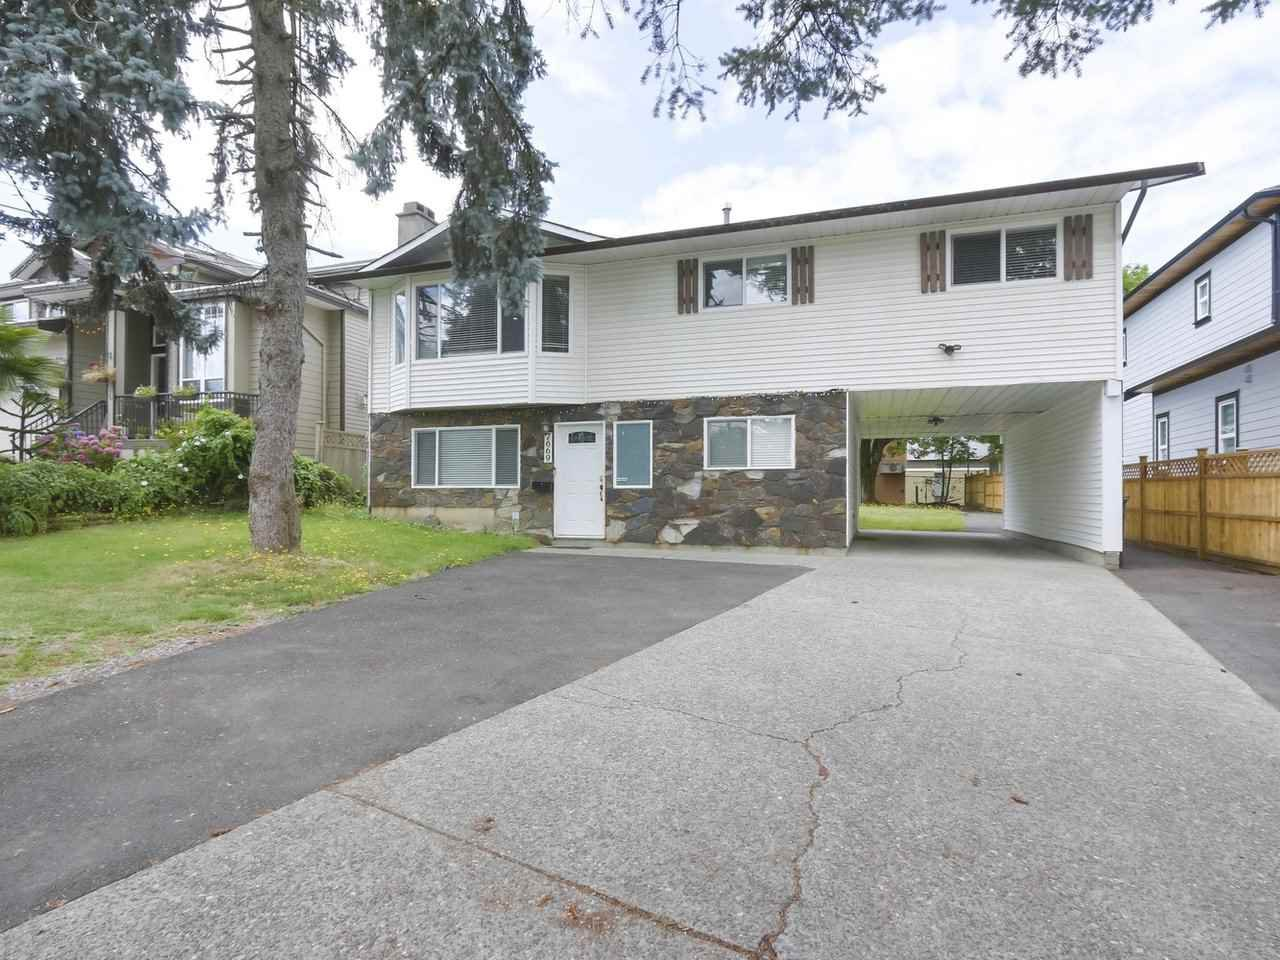 Main Photo: 7669 140 Street in Surrey: East Newton House for sale : MLS®# R2386560